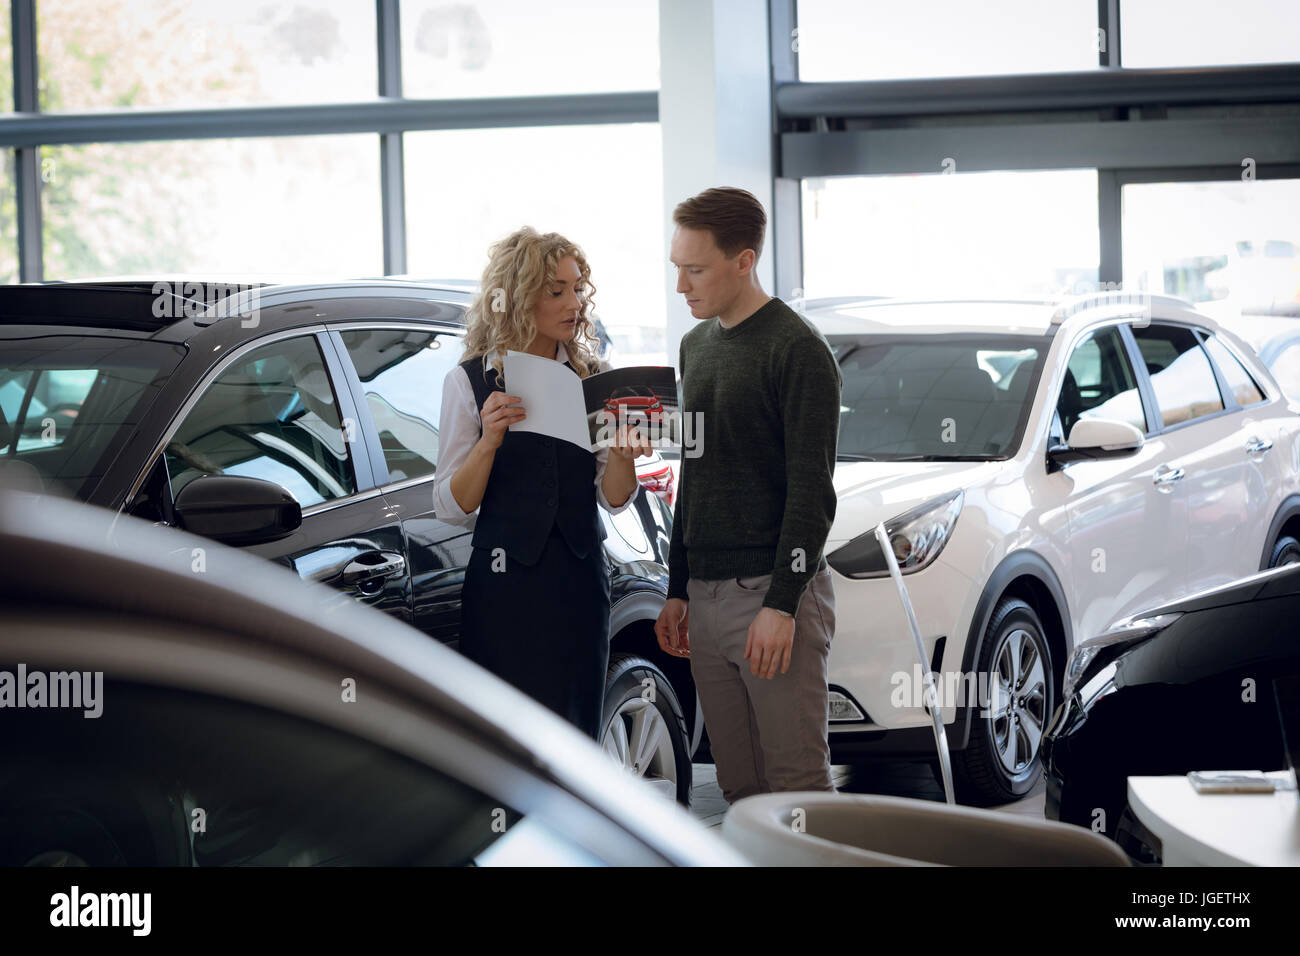 Saleswoman showing brochure to male customer - Stock Image